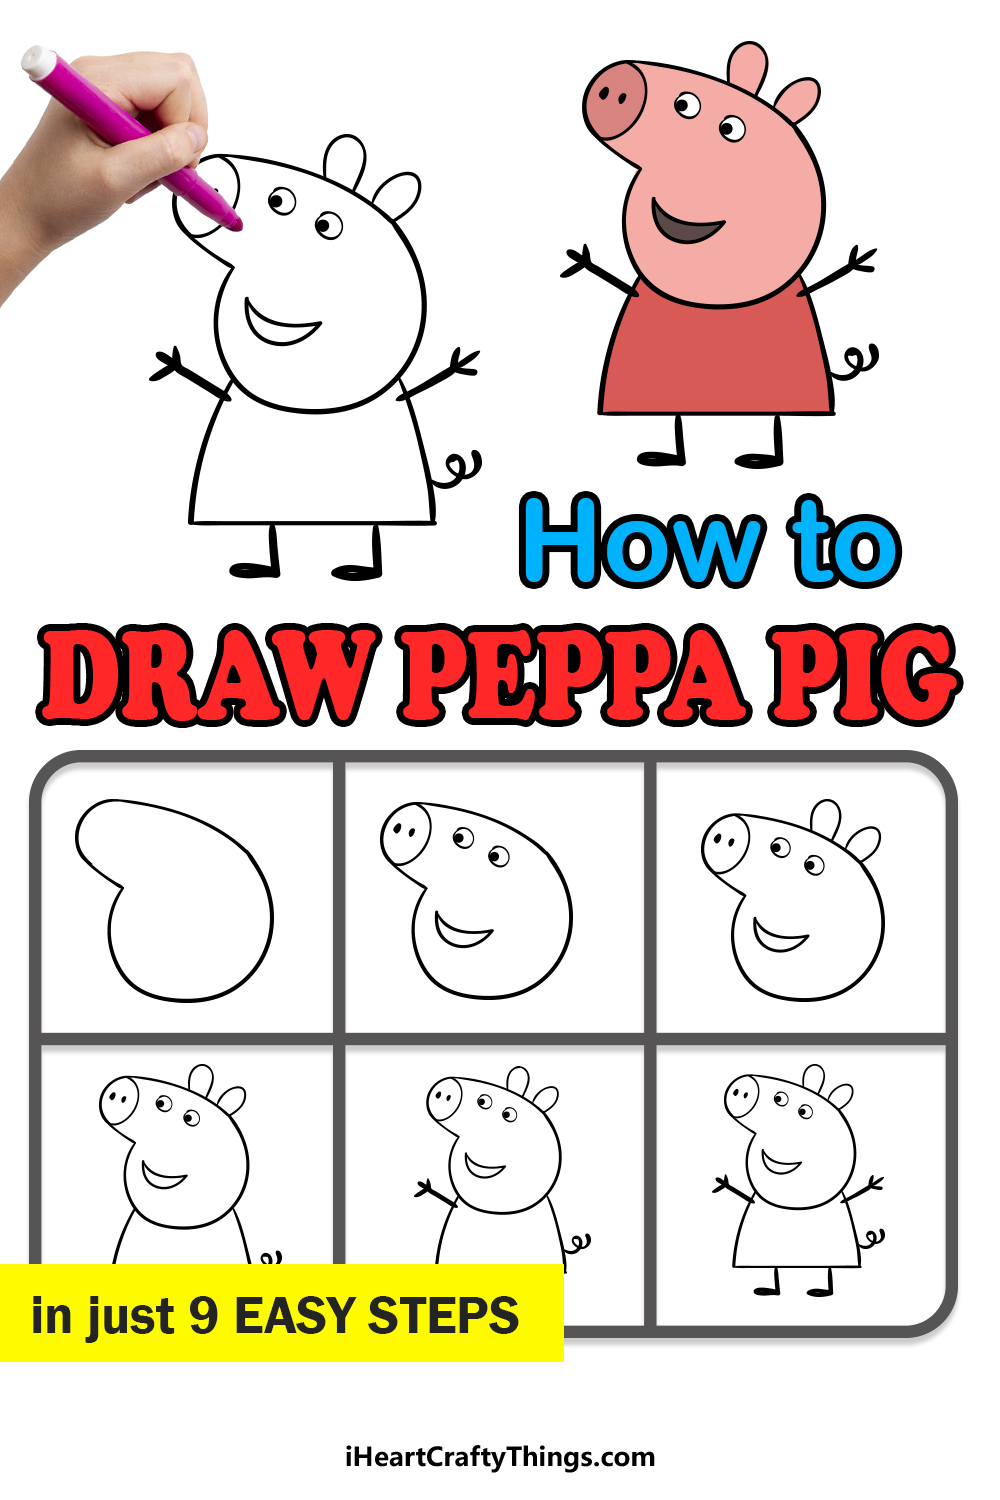 how to draw a peppa pig in 9 easy steps